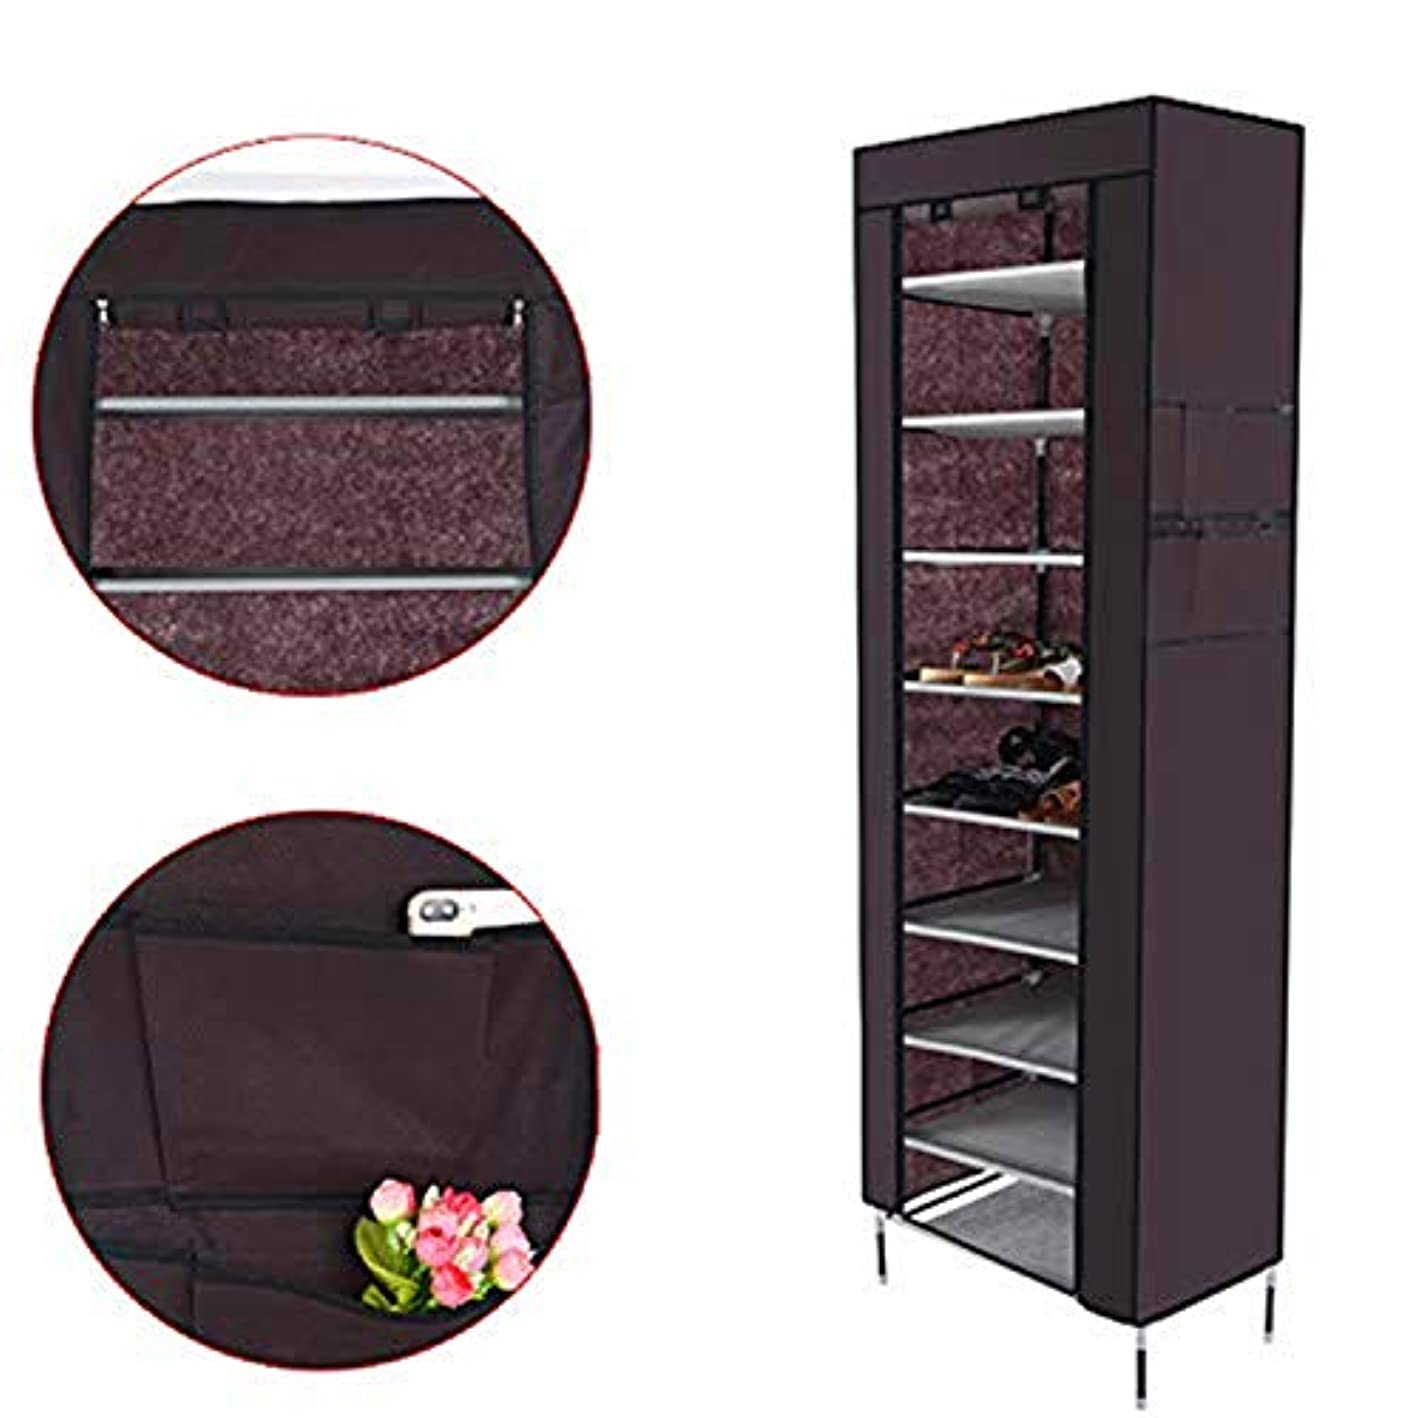 10 Tiers Shoe Rack Shelf Closet with Dustproof Cover Non-Woven Fabric Shoe Tower Closet Boot Storage Cabinet Organizer (Brown)